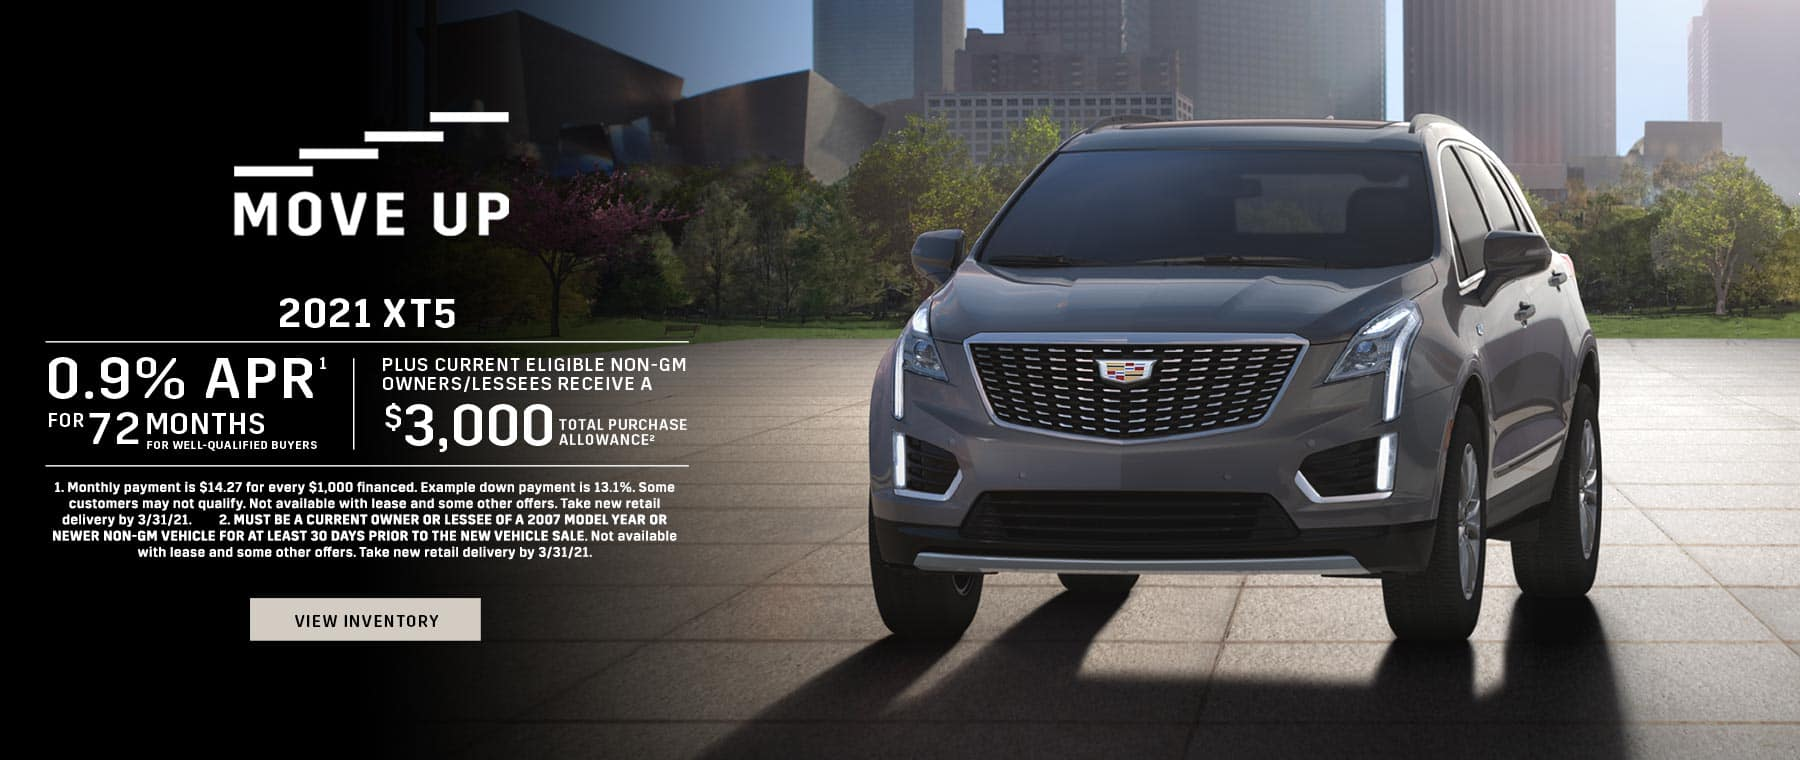 2021 Cadillac XT5 0.9% APR for 72 + $3,000 Purchase Allowance